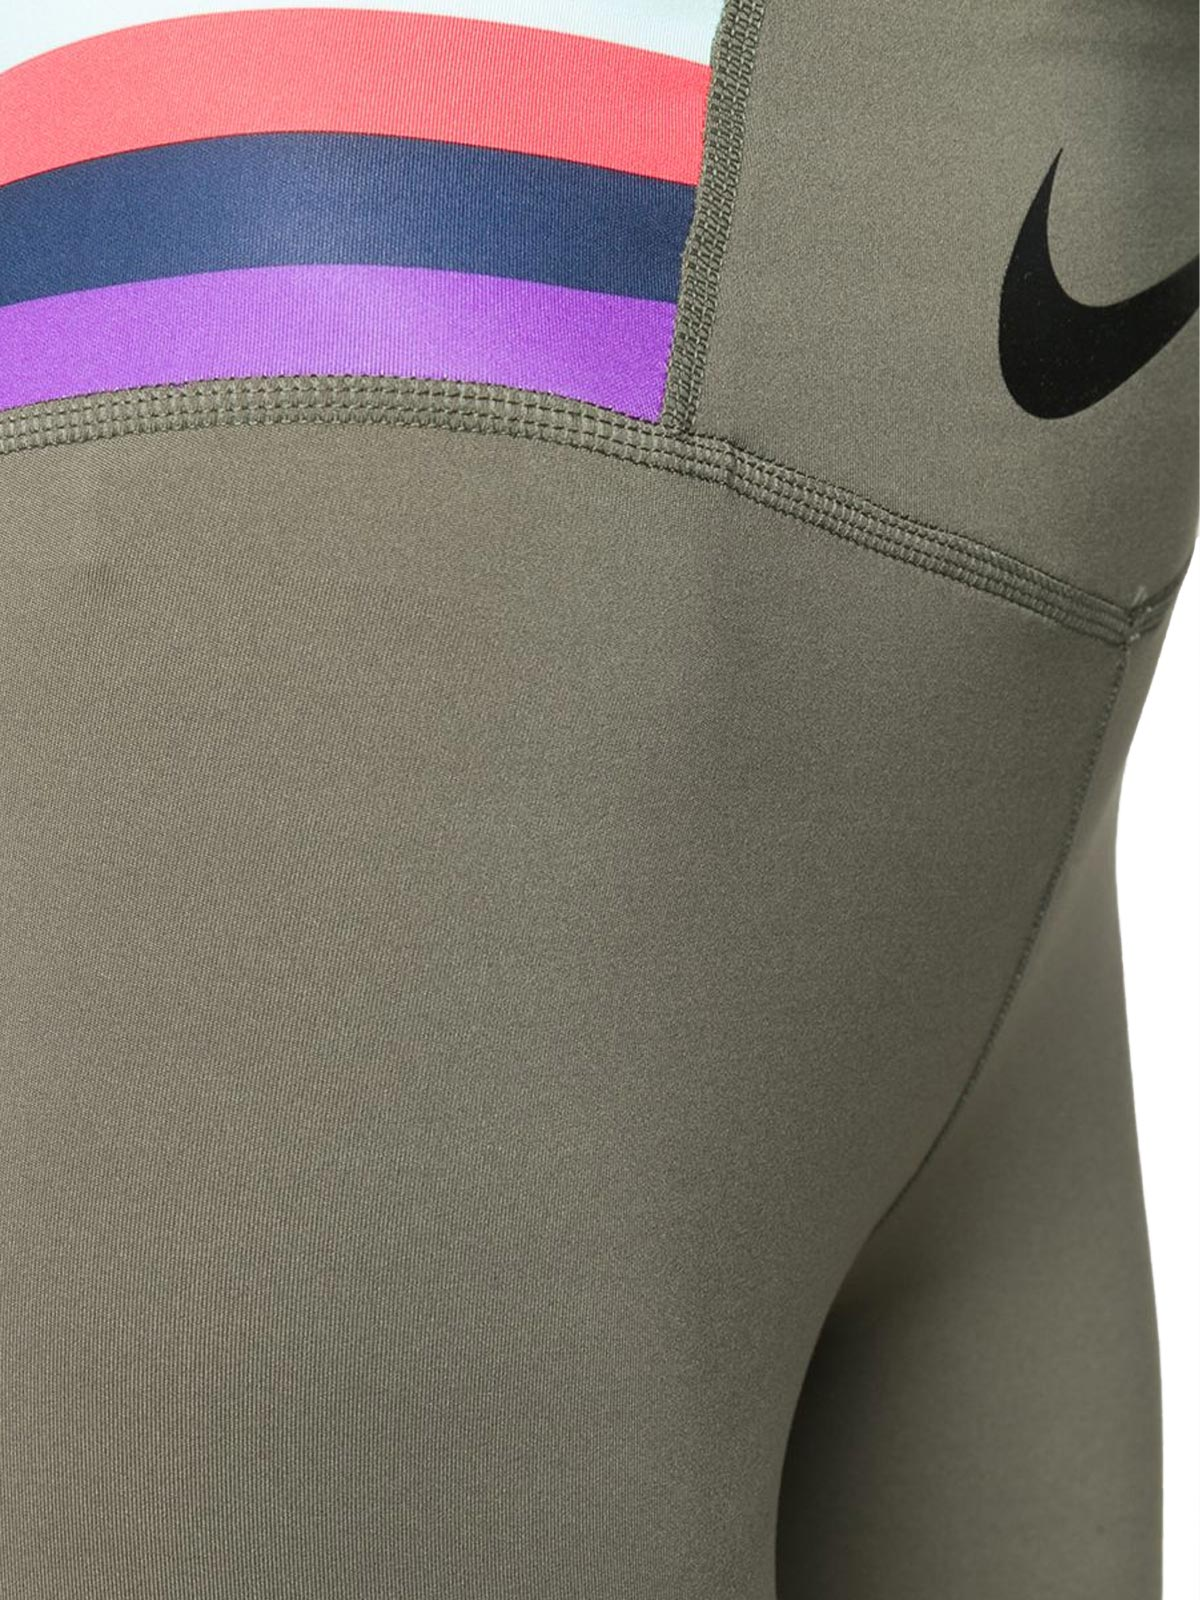 Women's Nike One Dry 7/8 Training Tights.   Small     CU5036-380